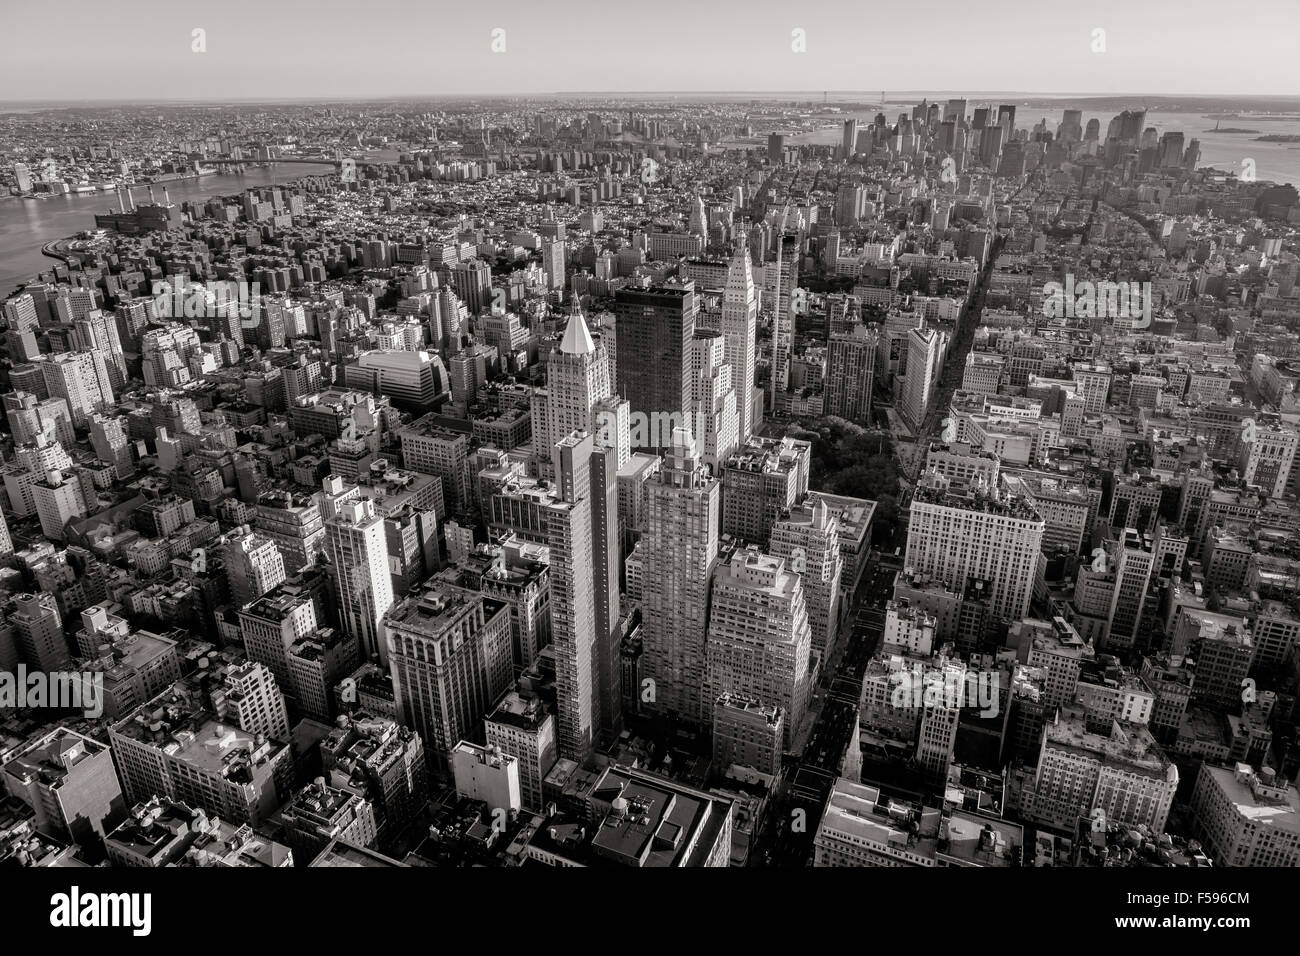 Black and white aerial view of New York City skyscrapers with Midtown, Chelsea, East Village and Lower Manhattan. Stock Photo